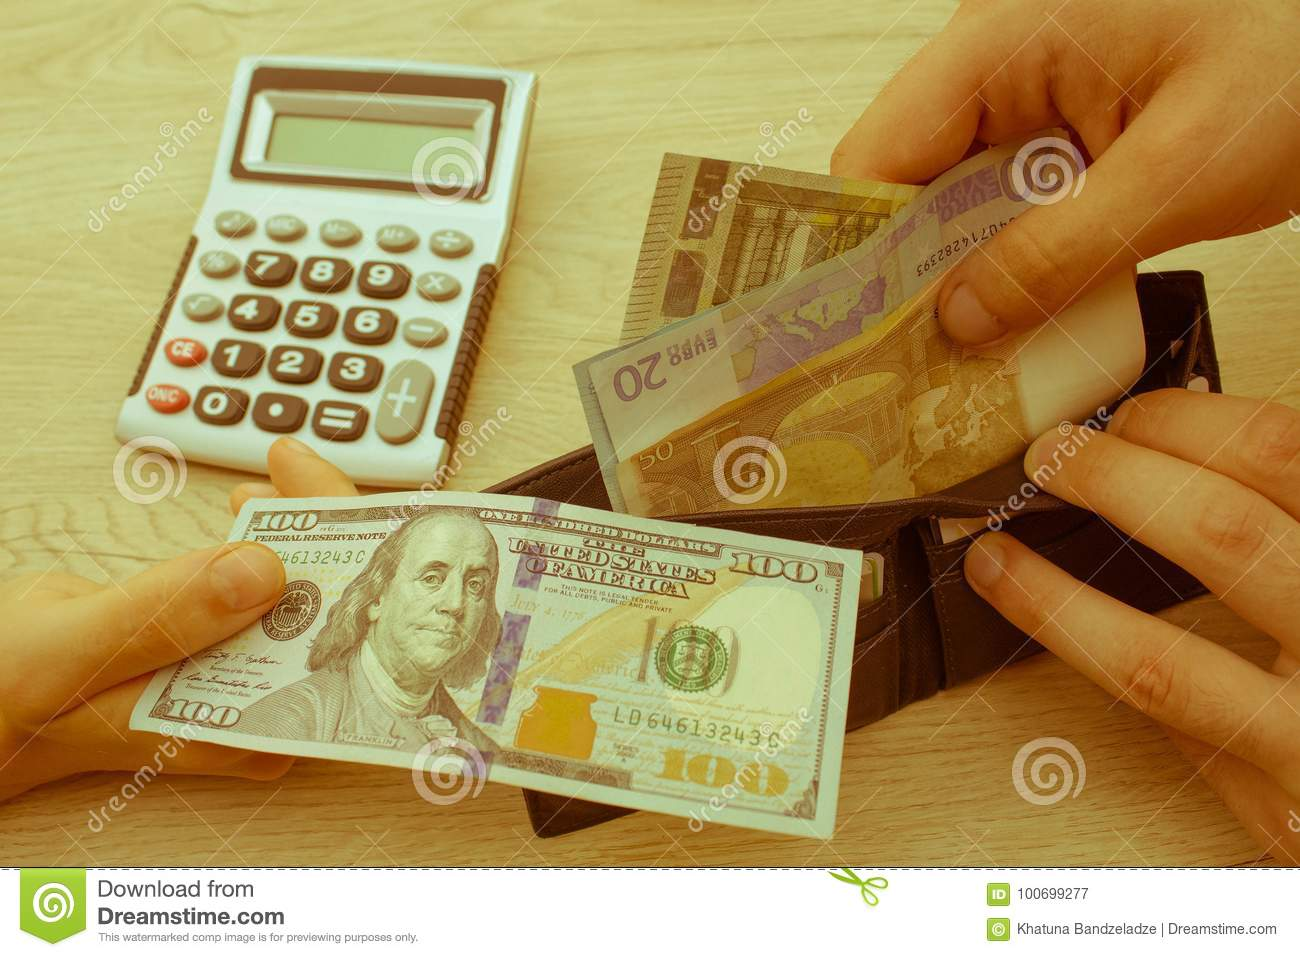 Finances, currency, business and people concept - close up of male and female hands giving or exchanging money